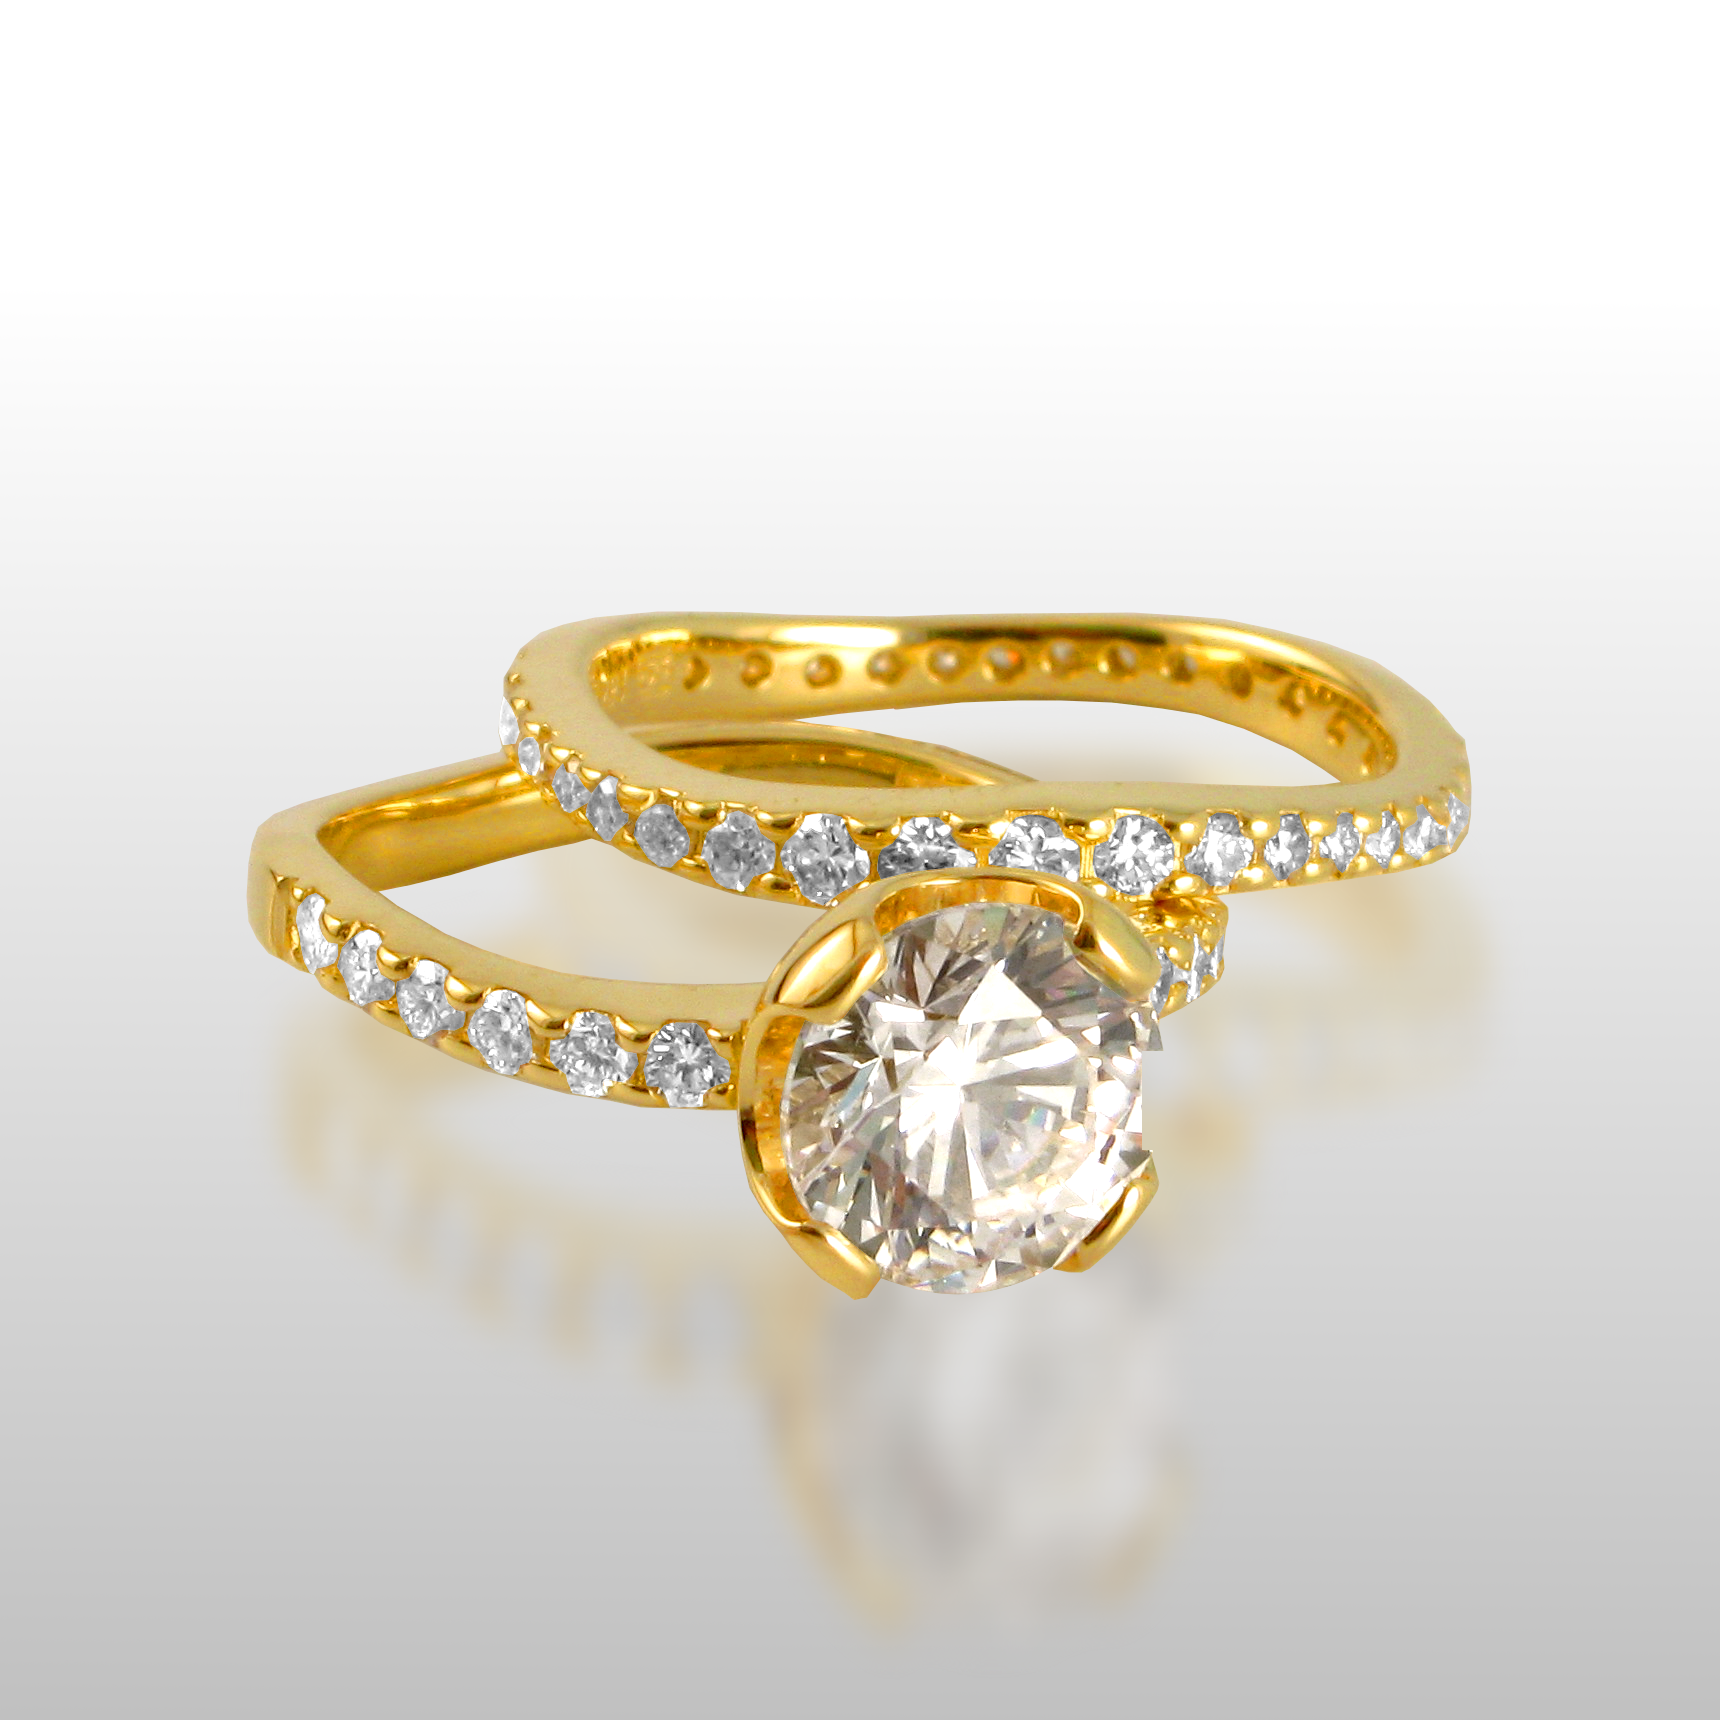 Wedding ring set 'lamello' - solitaire and eternity band - in 18k gold or platinum by Pratima Design Fine Art Jewelry